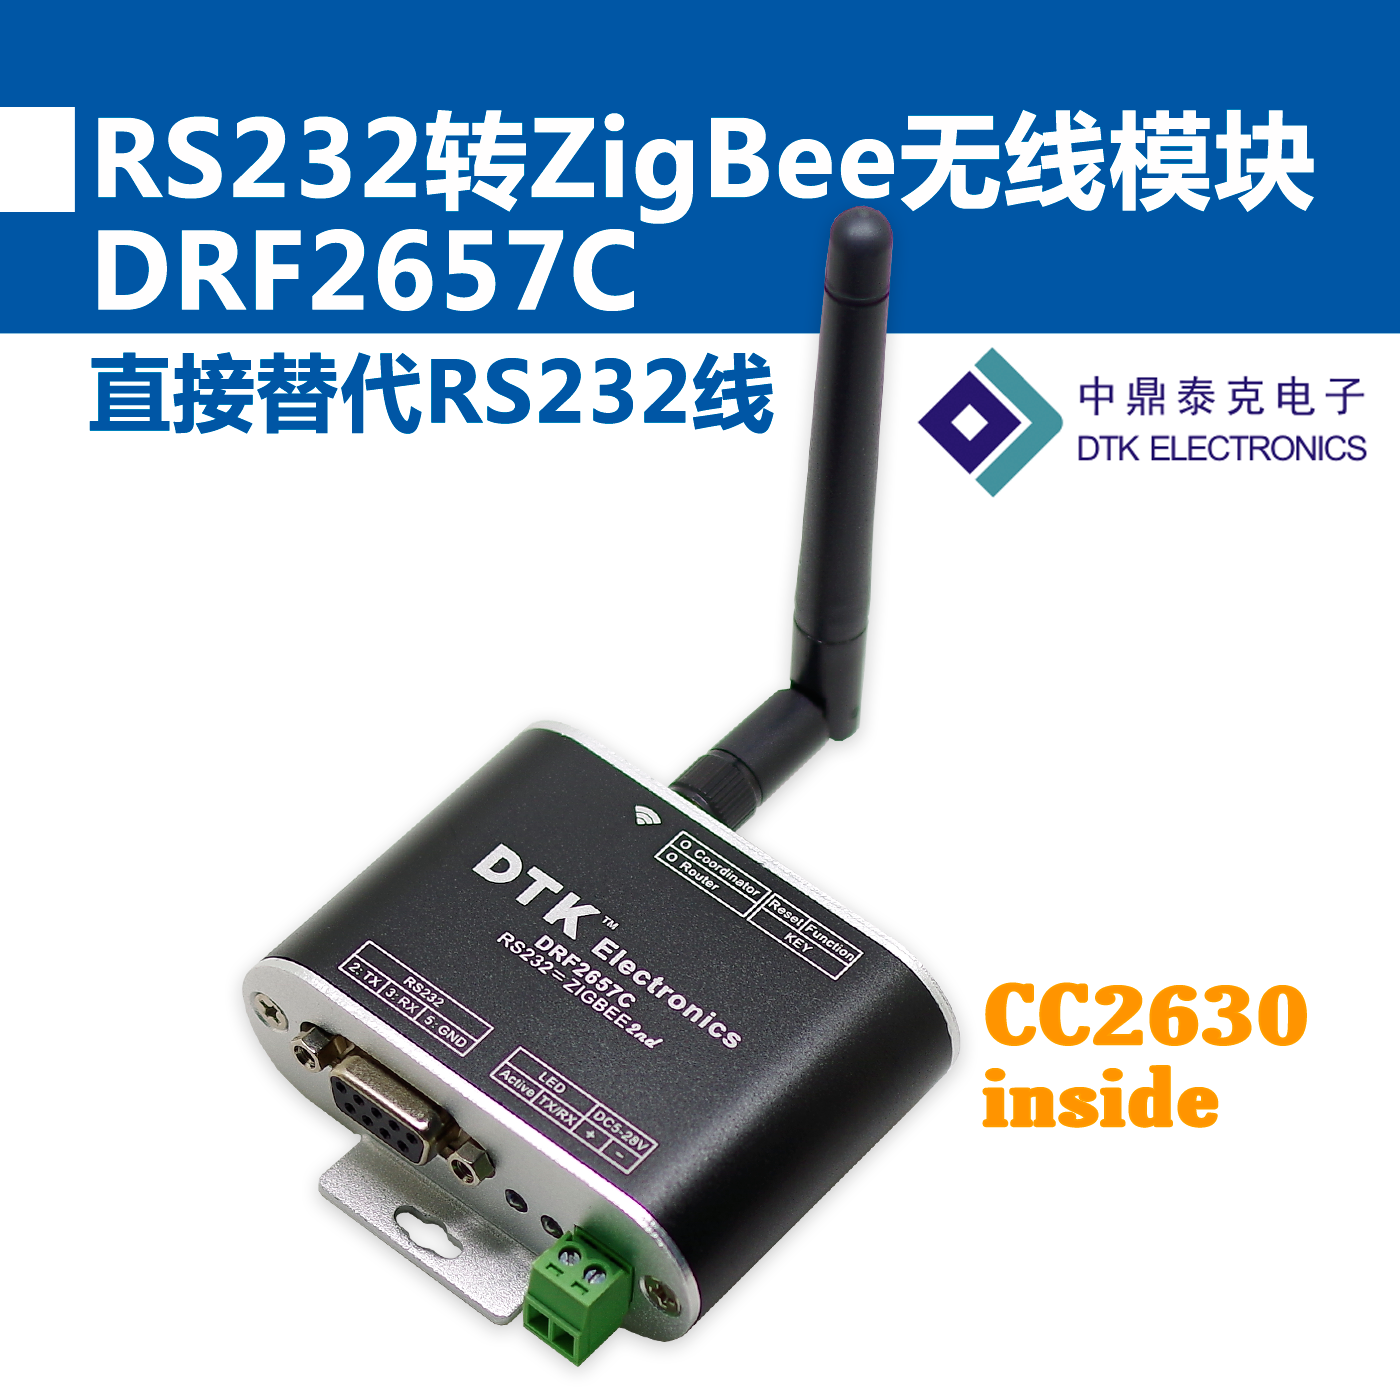 RS232 Switch to ZigBee Wireless Module (1.6 Km Transmission, CC2630 Chip, Far Beyond CC2530) freeshipping uart to zigbee wireless module 1 6km cc2530 module with antenna